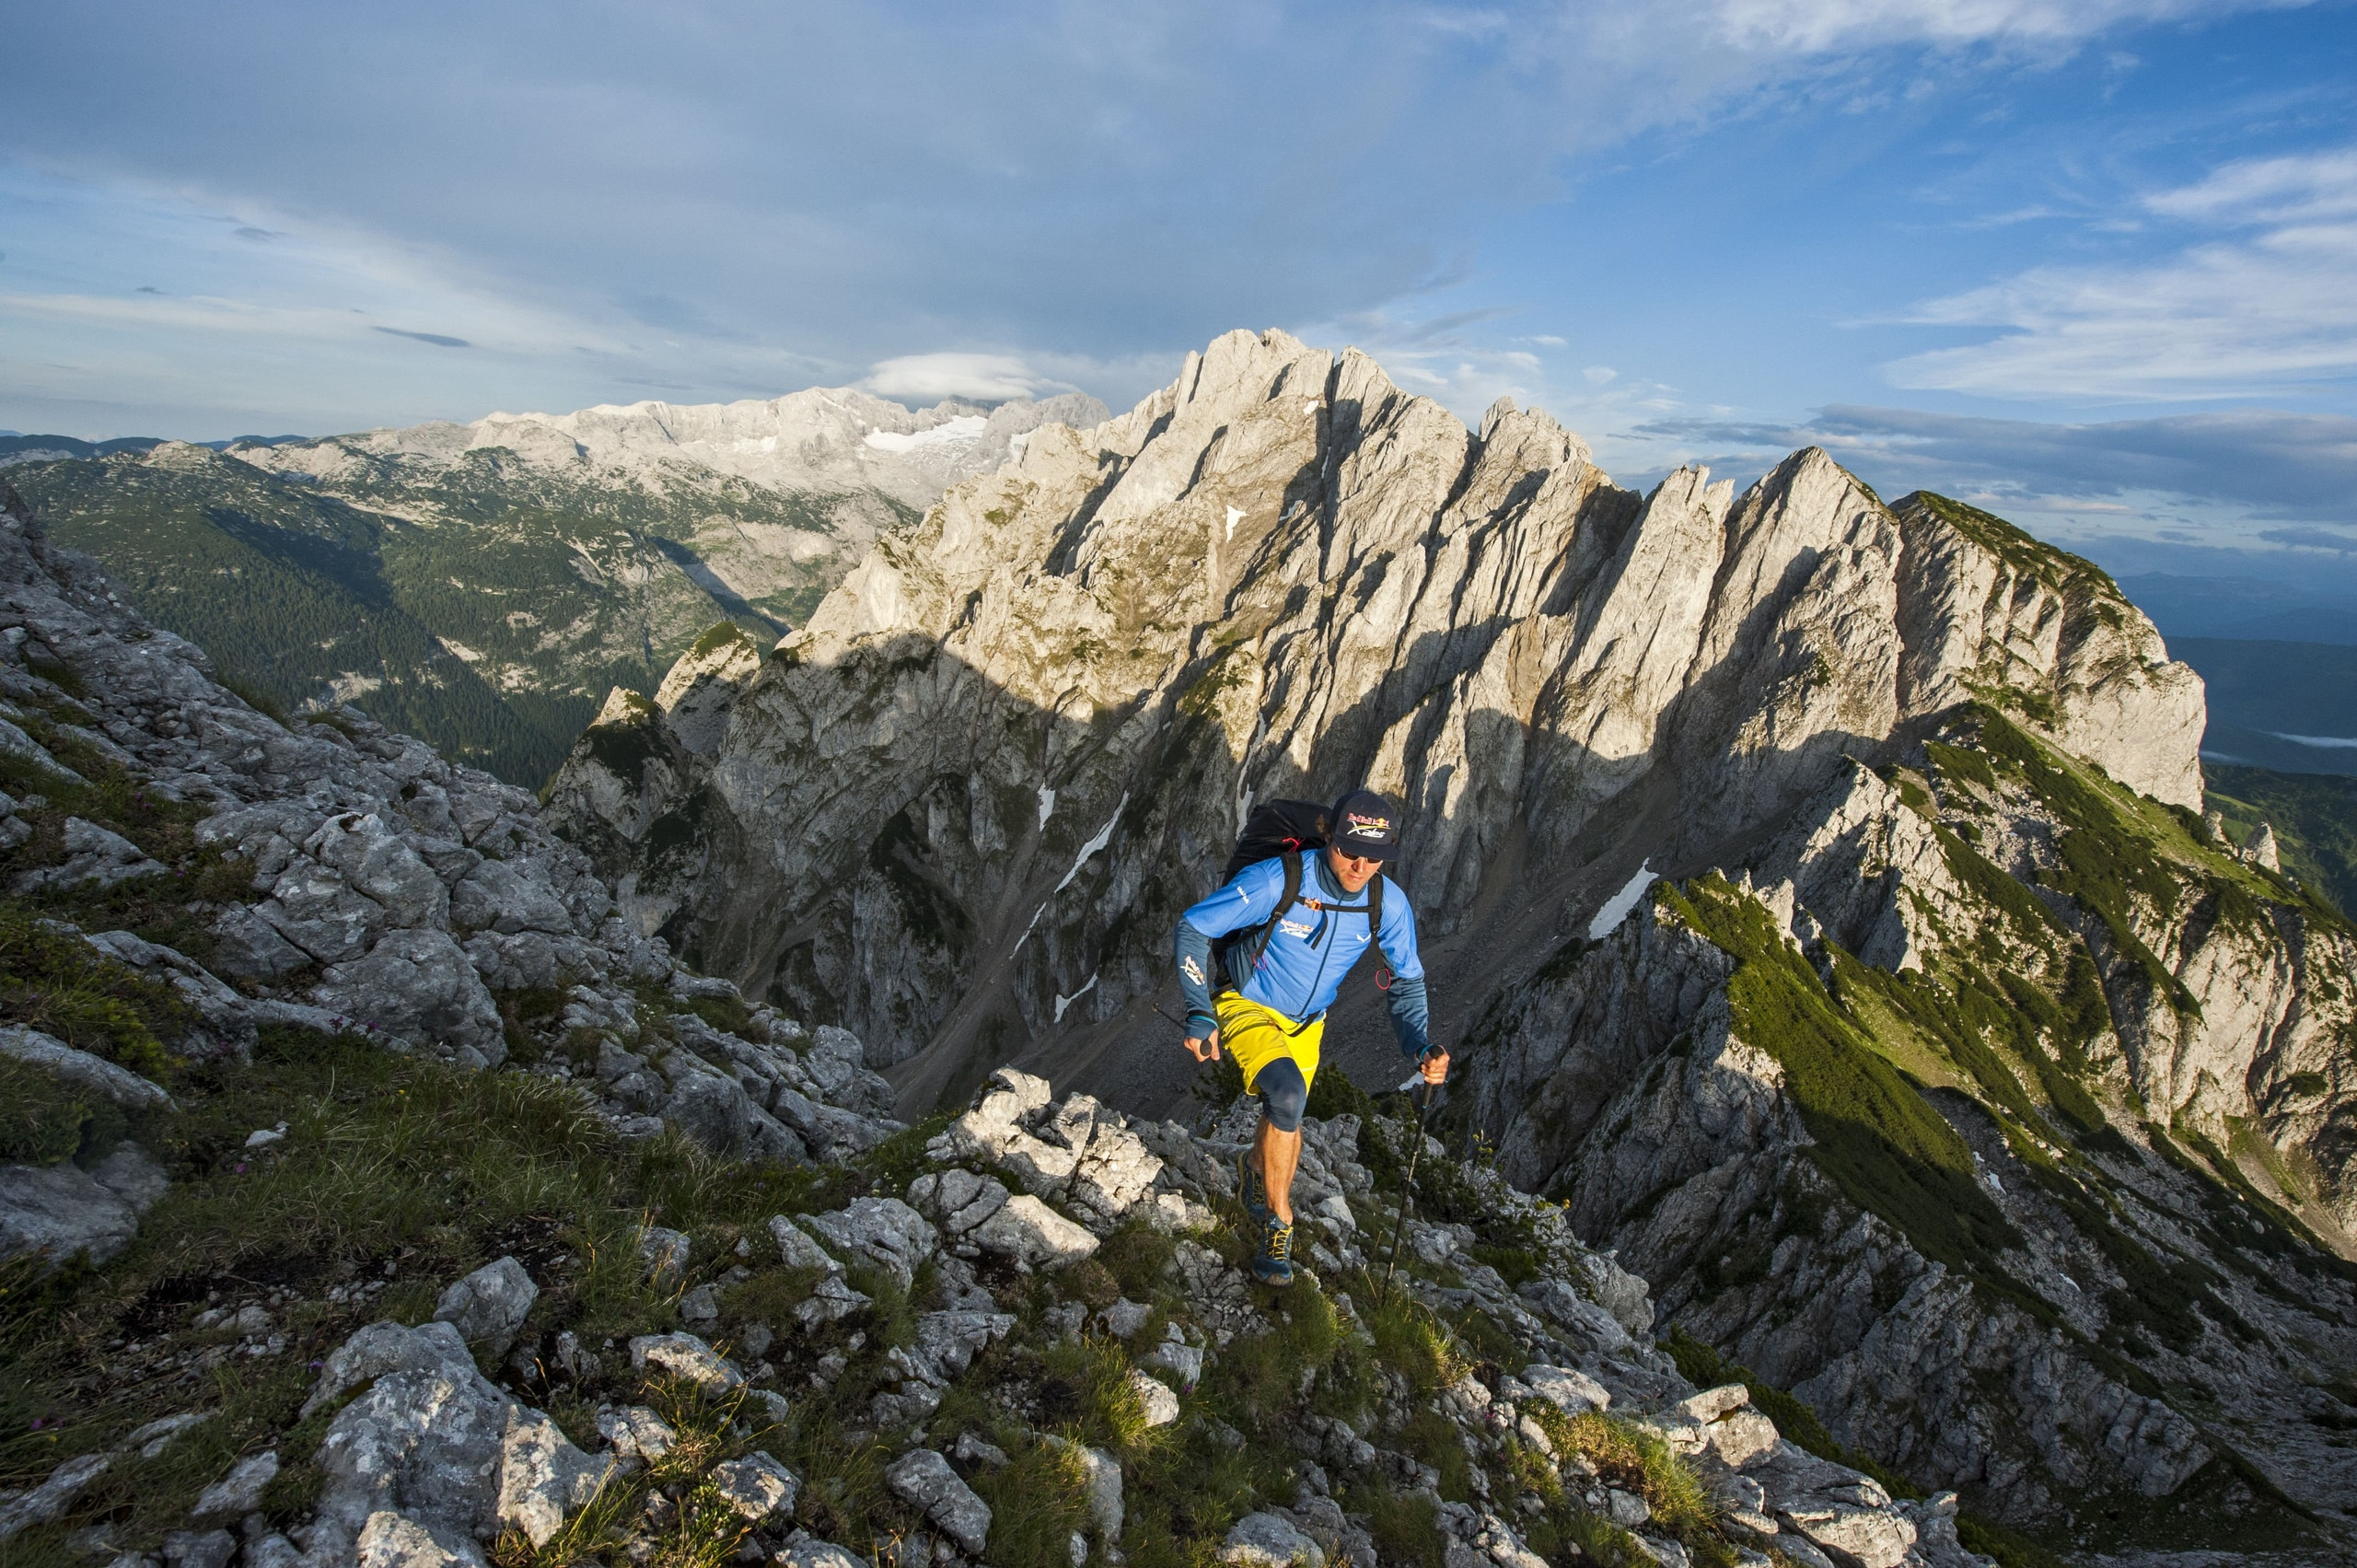 Participant hikes during the Red Bull X-Alps preparations in Gosau, Austria on June 27th 2017